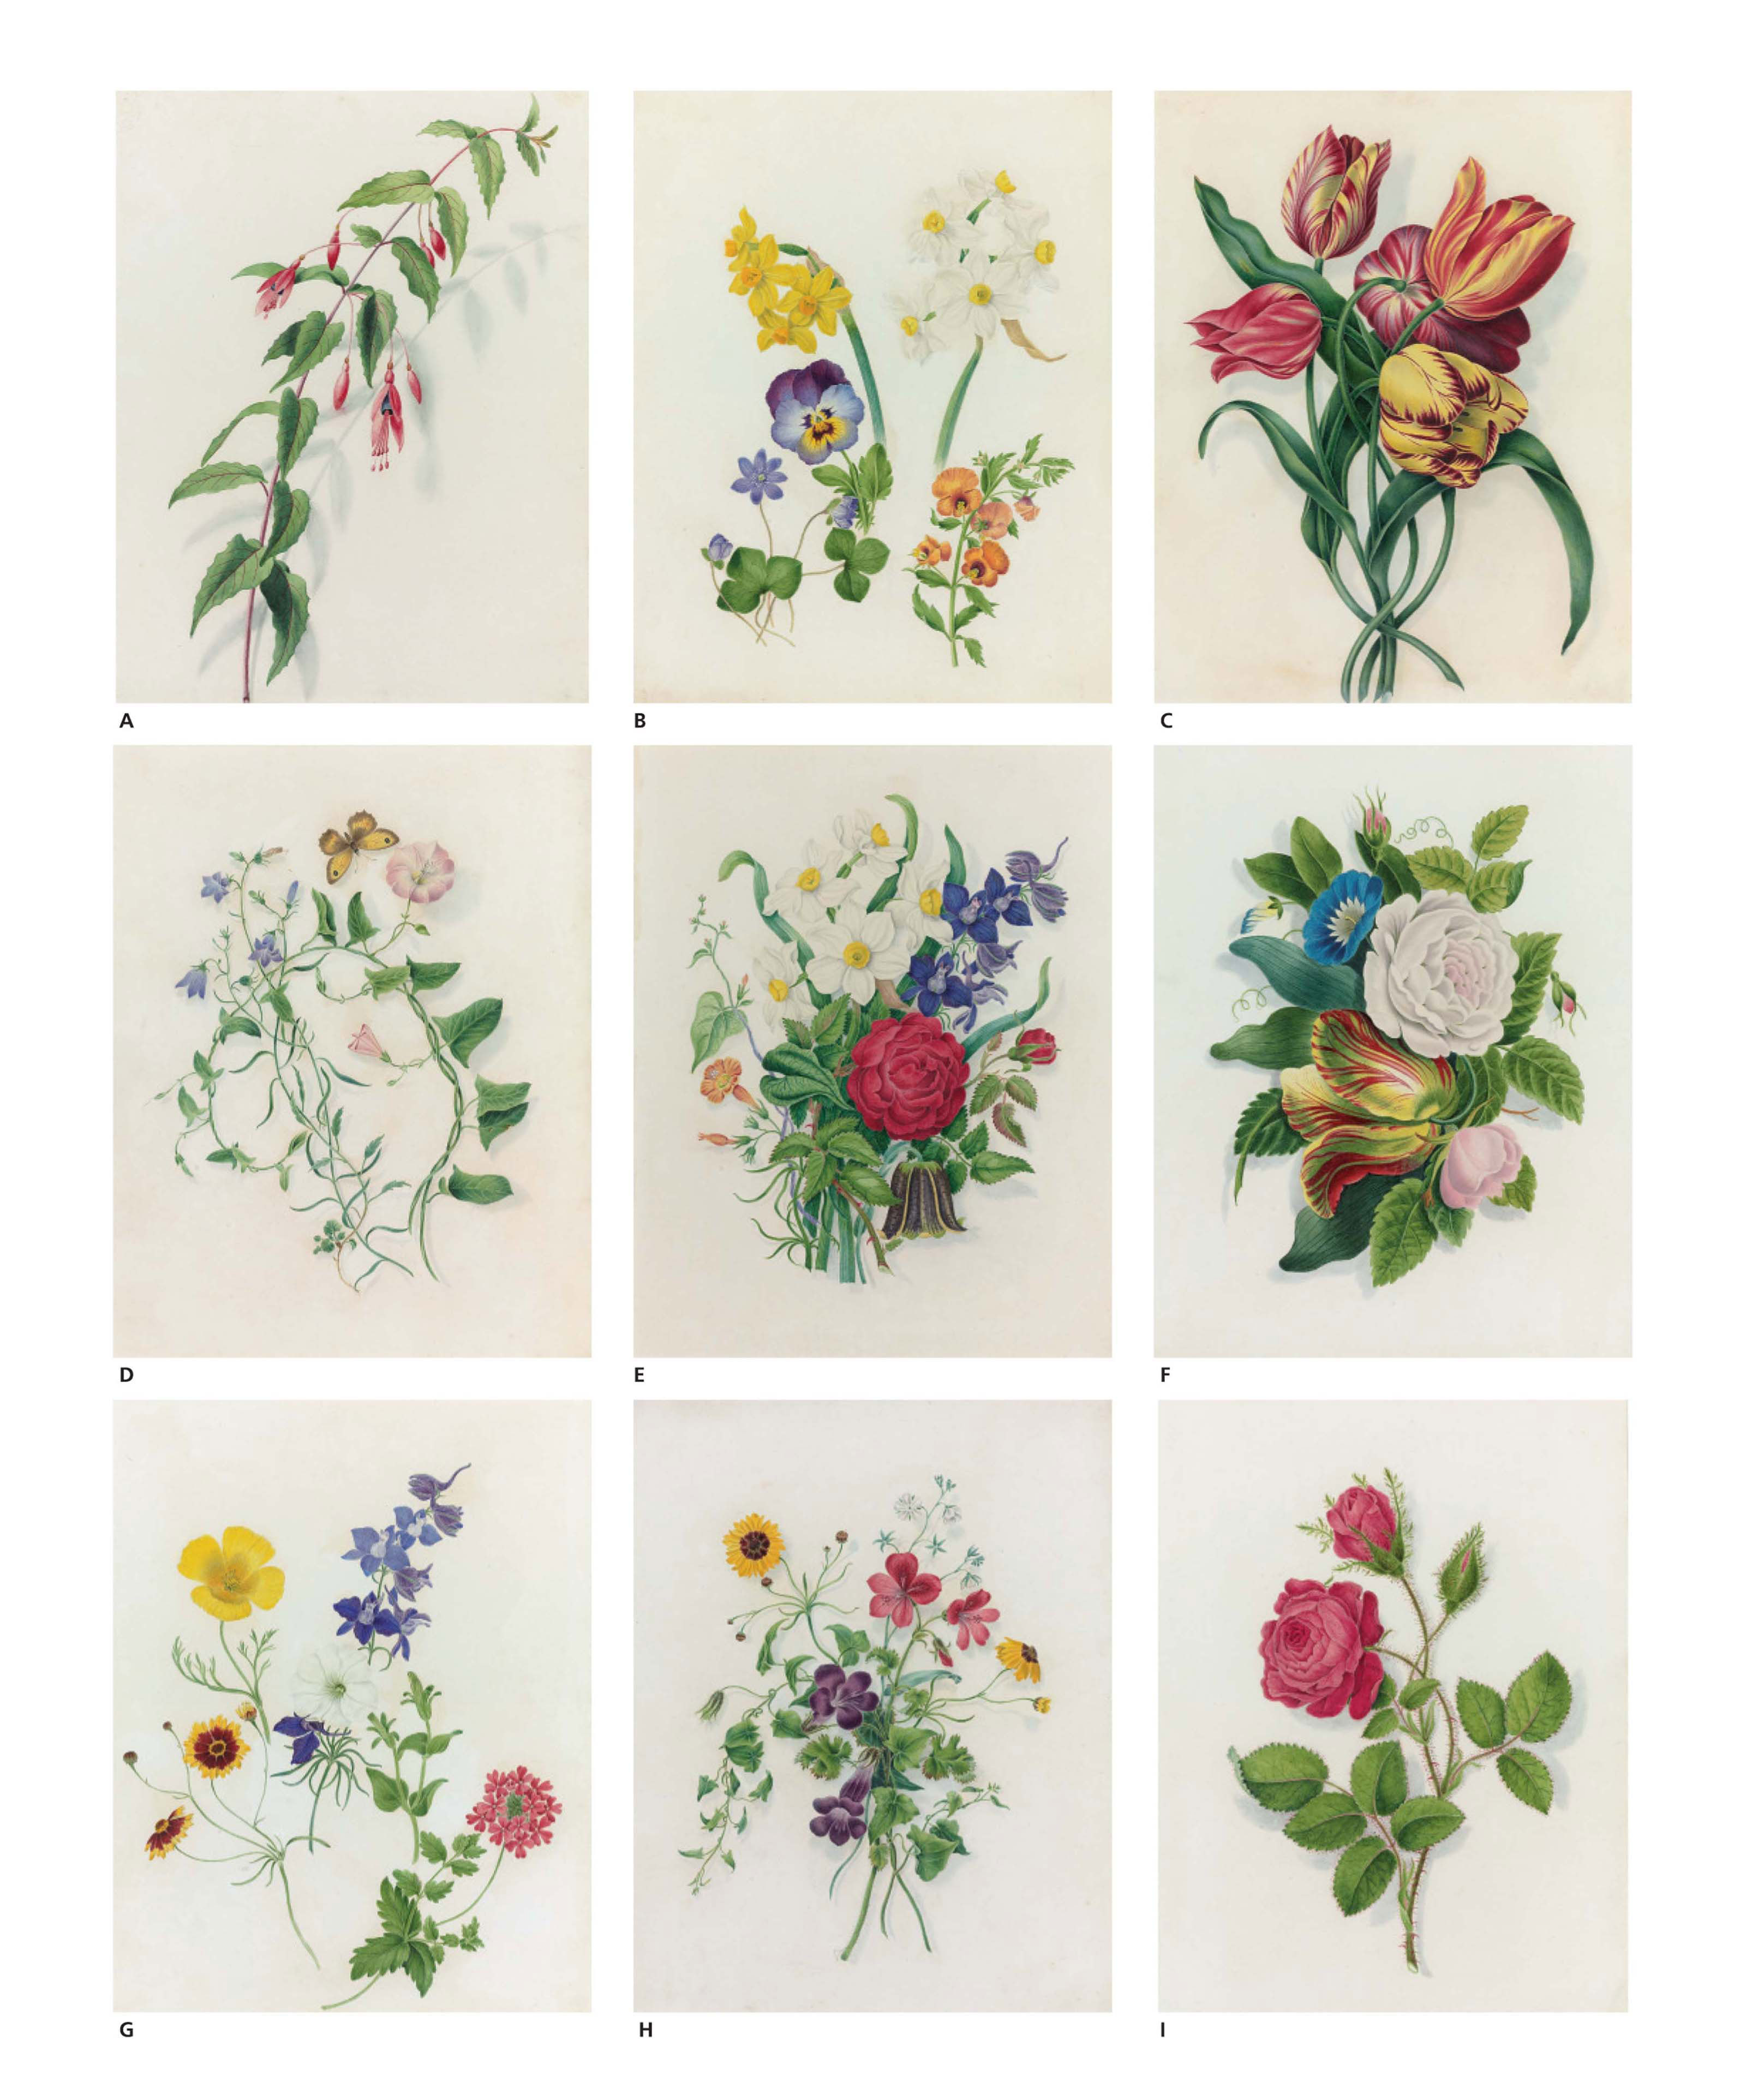 Nine botanical watercolours including: Fuschia (a); Narcissi and Pansies (b); Tulips (c); Convolvulus and Campanula (d); Narcissus with Roses (e); Tulips, Roses and Convolvulus (f); Marigold, Poppy, Petunia and Verbena (g); Bloody Cranesbill and Streptocarpus (h); and Roses (i)